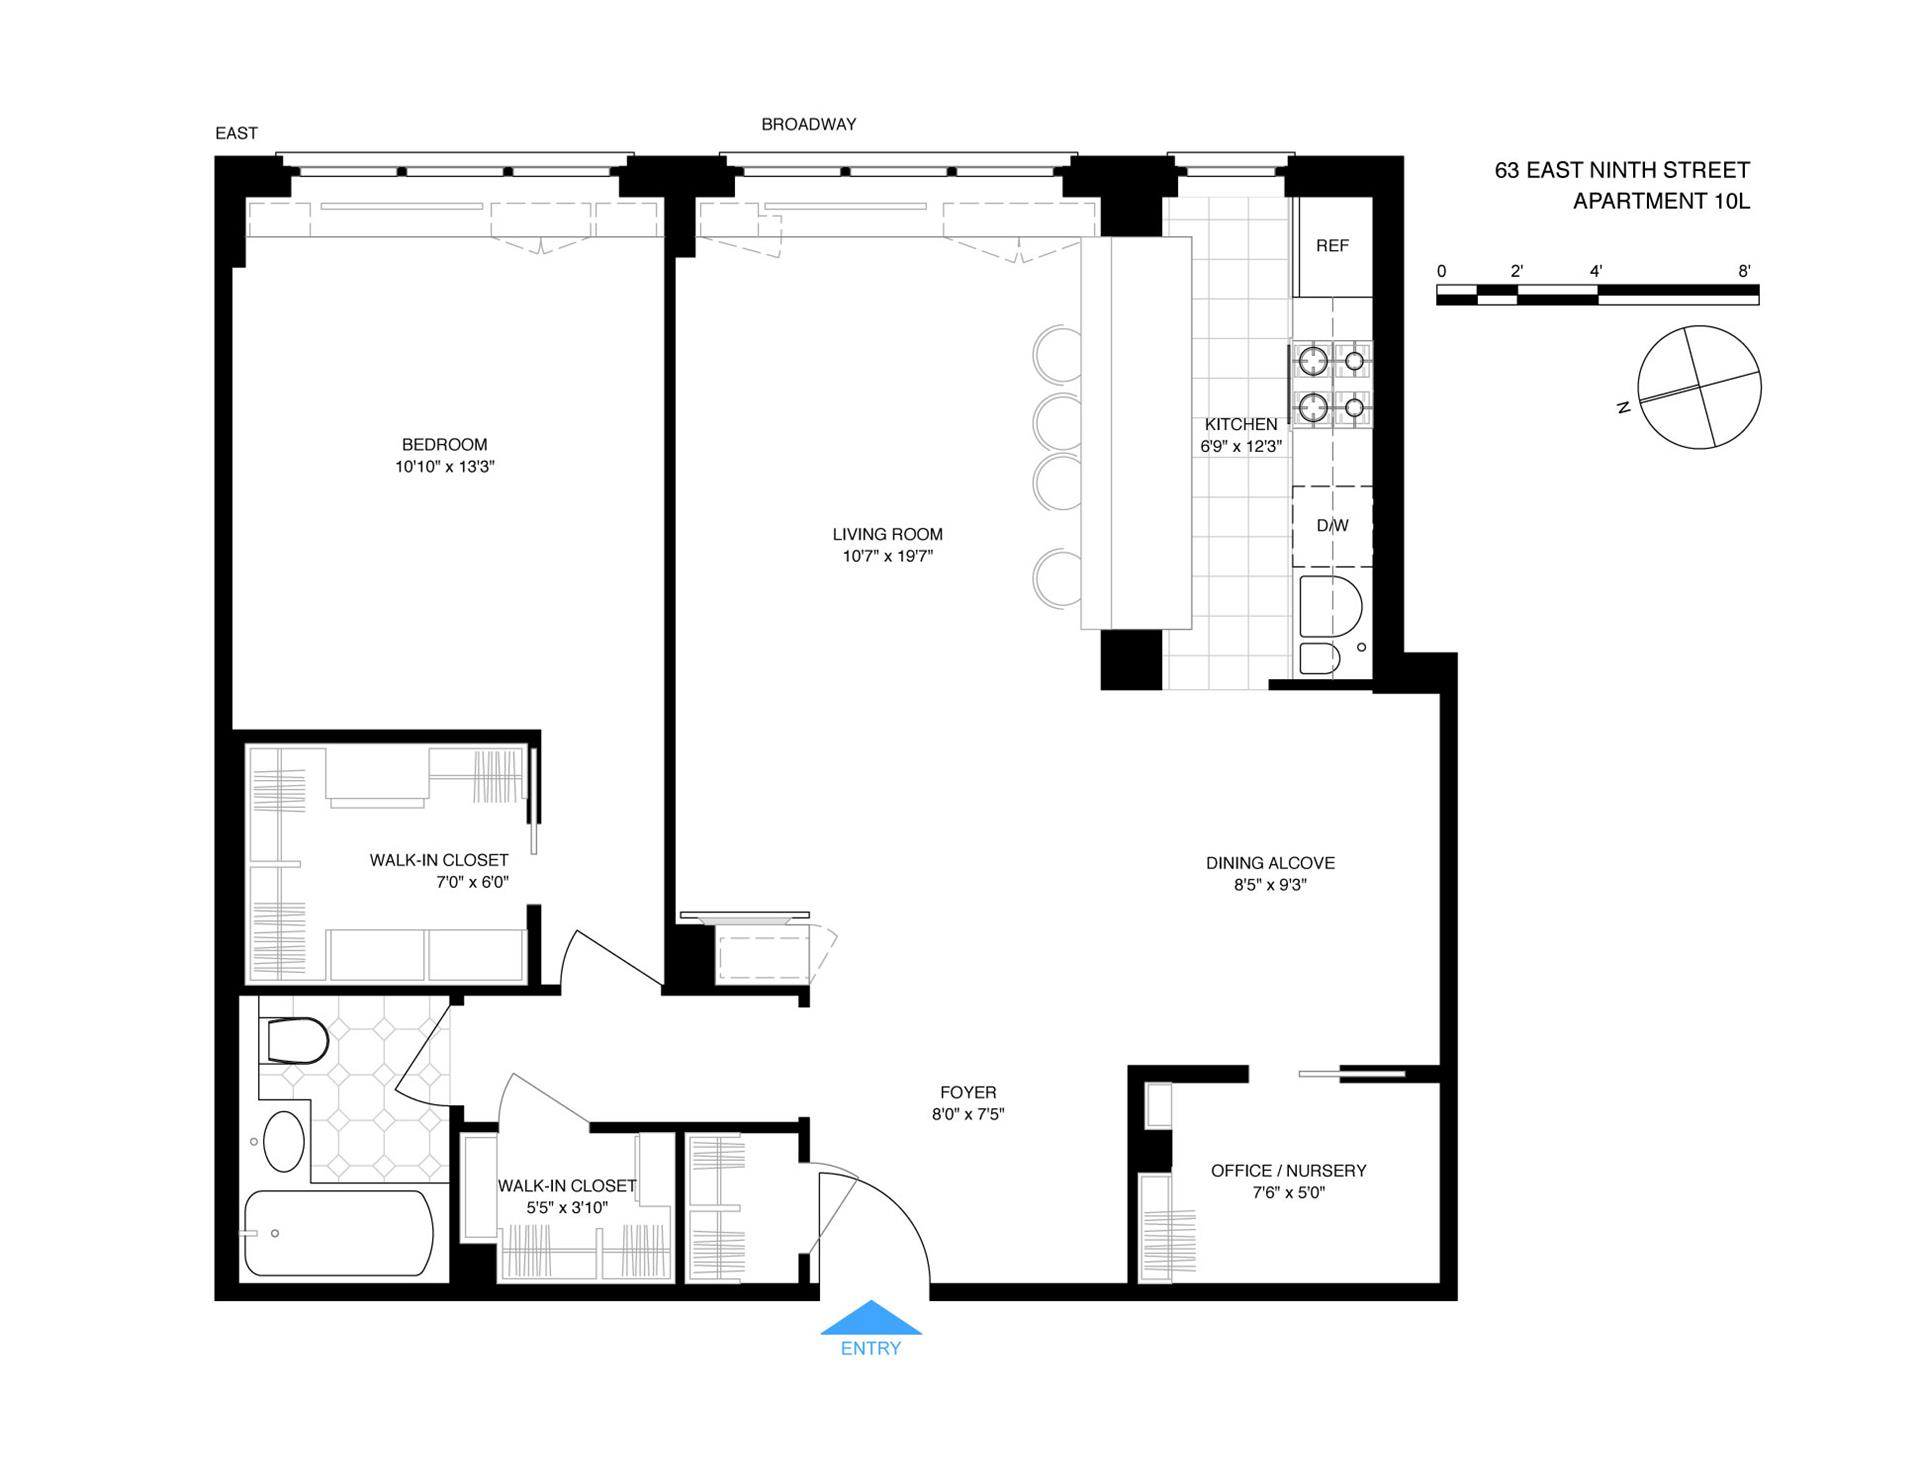 Floor plan of RANDALL HOUSE, 63 East 9th St, 10L - Greenwich Village, New York